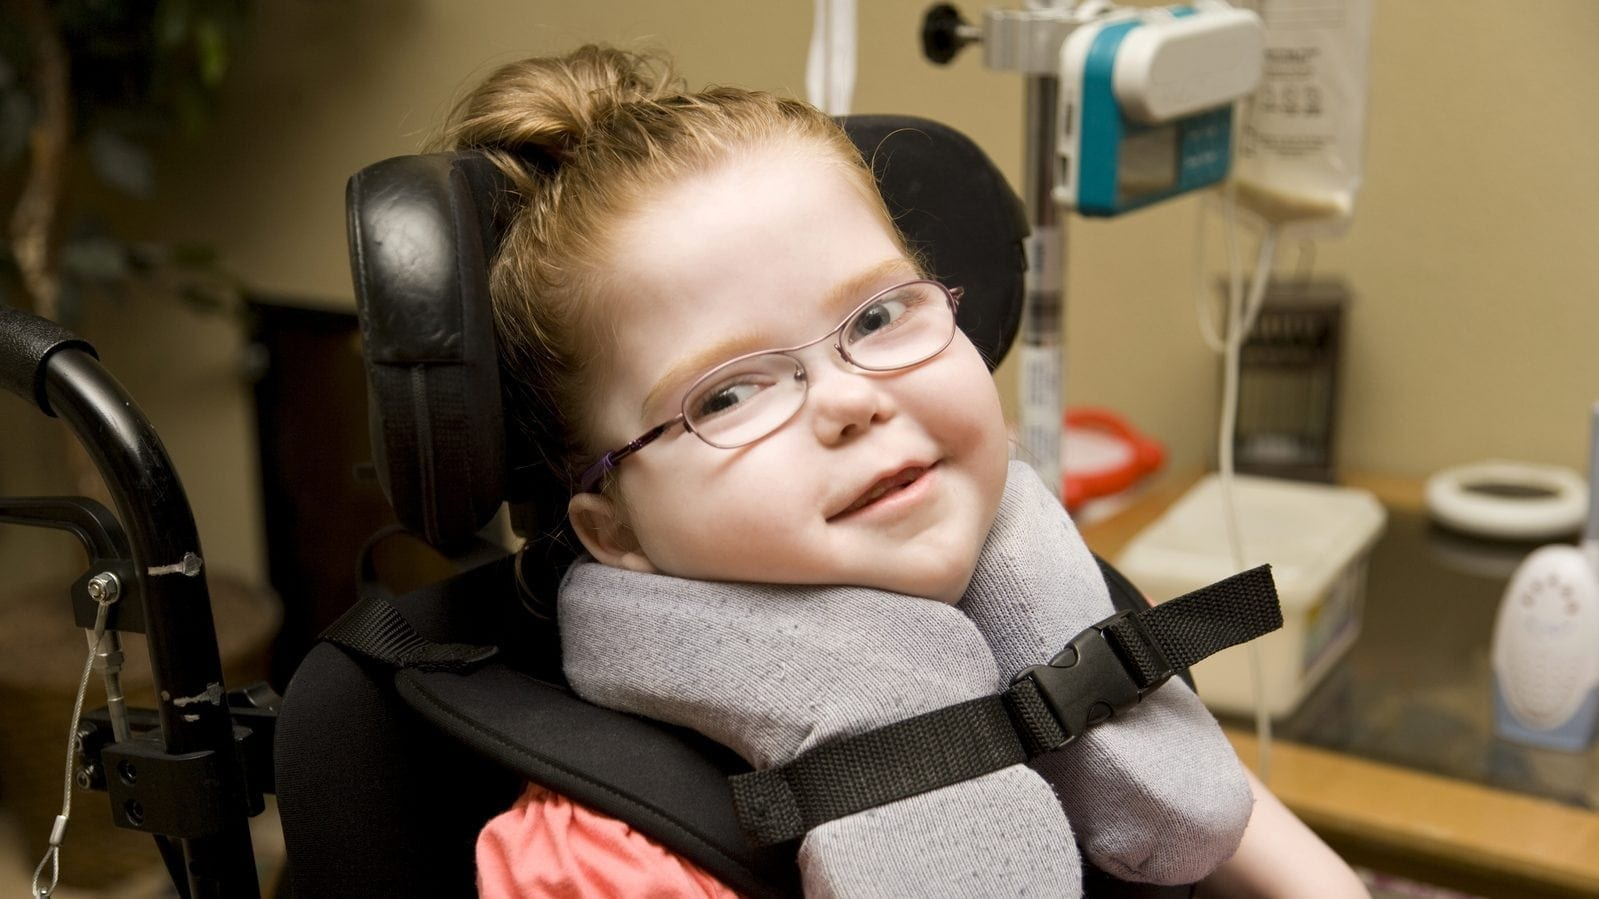 SSDI Benefits for Cerebral Palsy | Law Offices of Dr. Bill LaTour